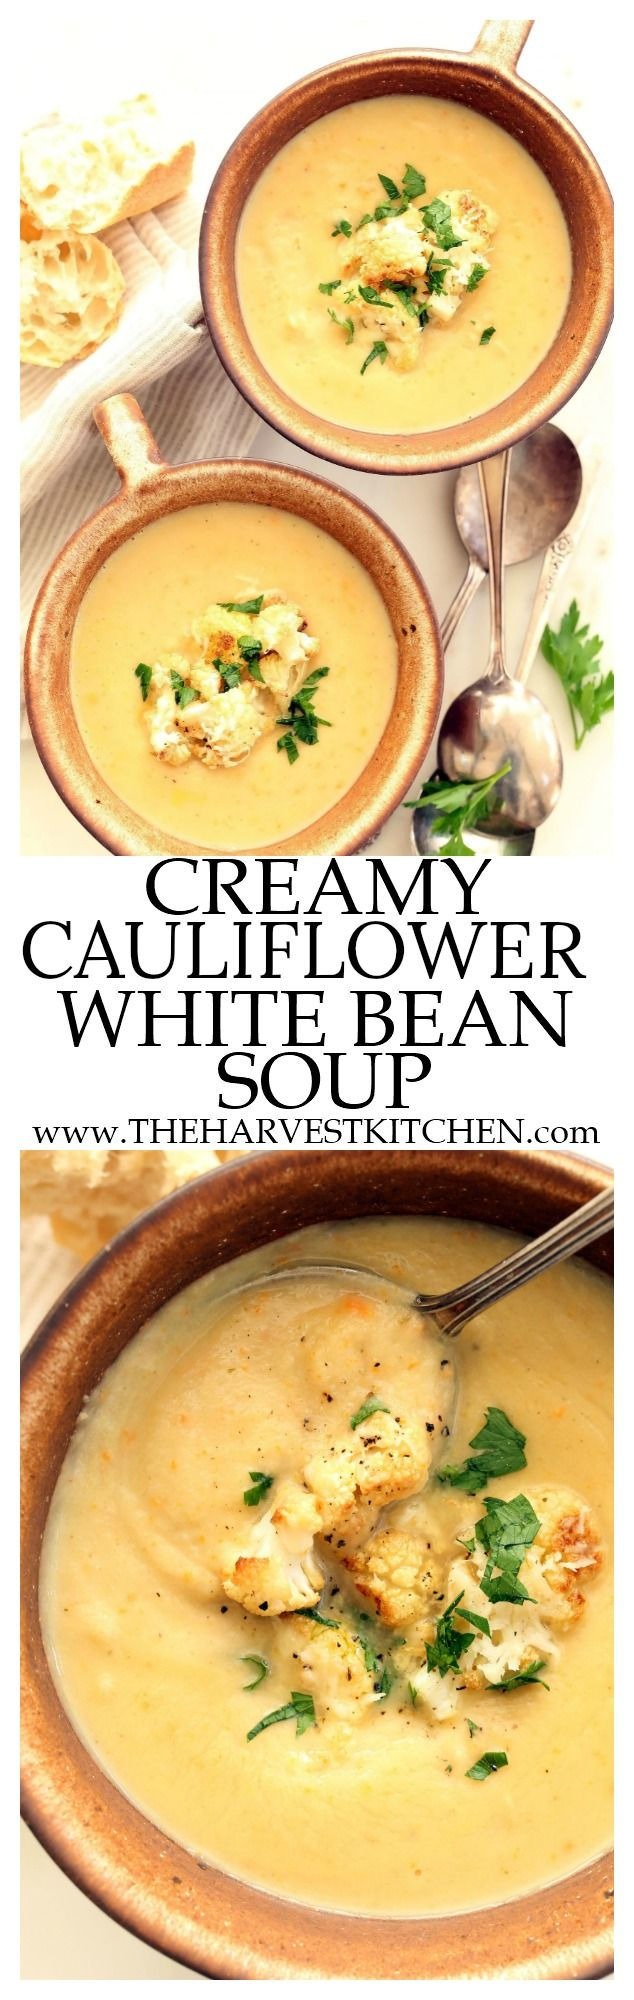 This Creamy Cauliflower White Bean Soup is a perfect winter soup that's loaded with cauliflower, carrots, celery and onions. Blended white beans are used to thicken this soup in lieu of milk or cream. @theharvestkitchen.com